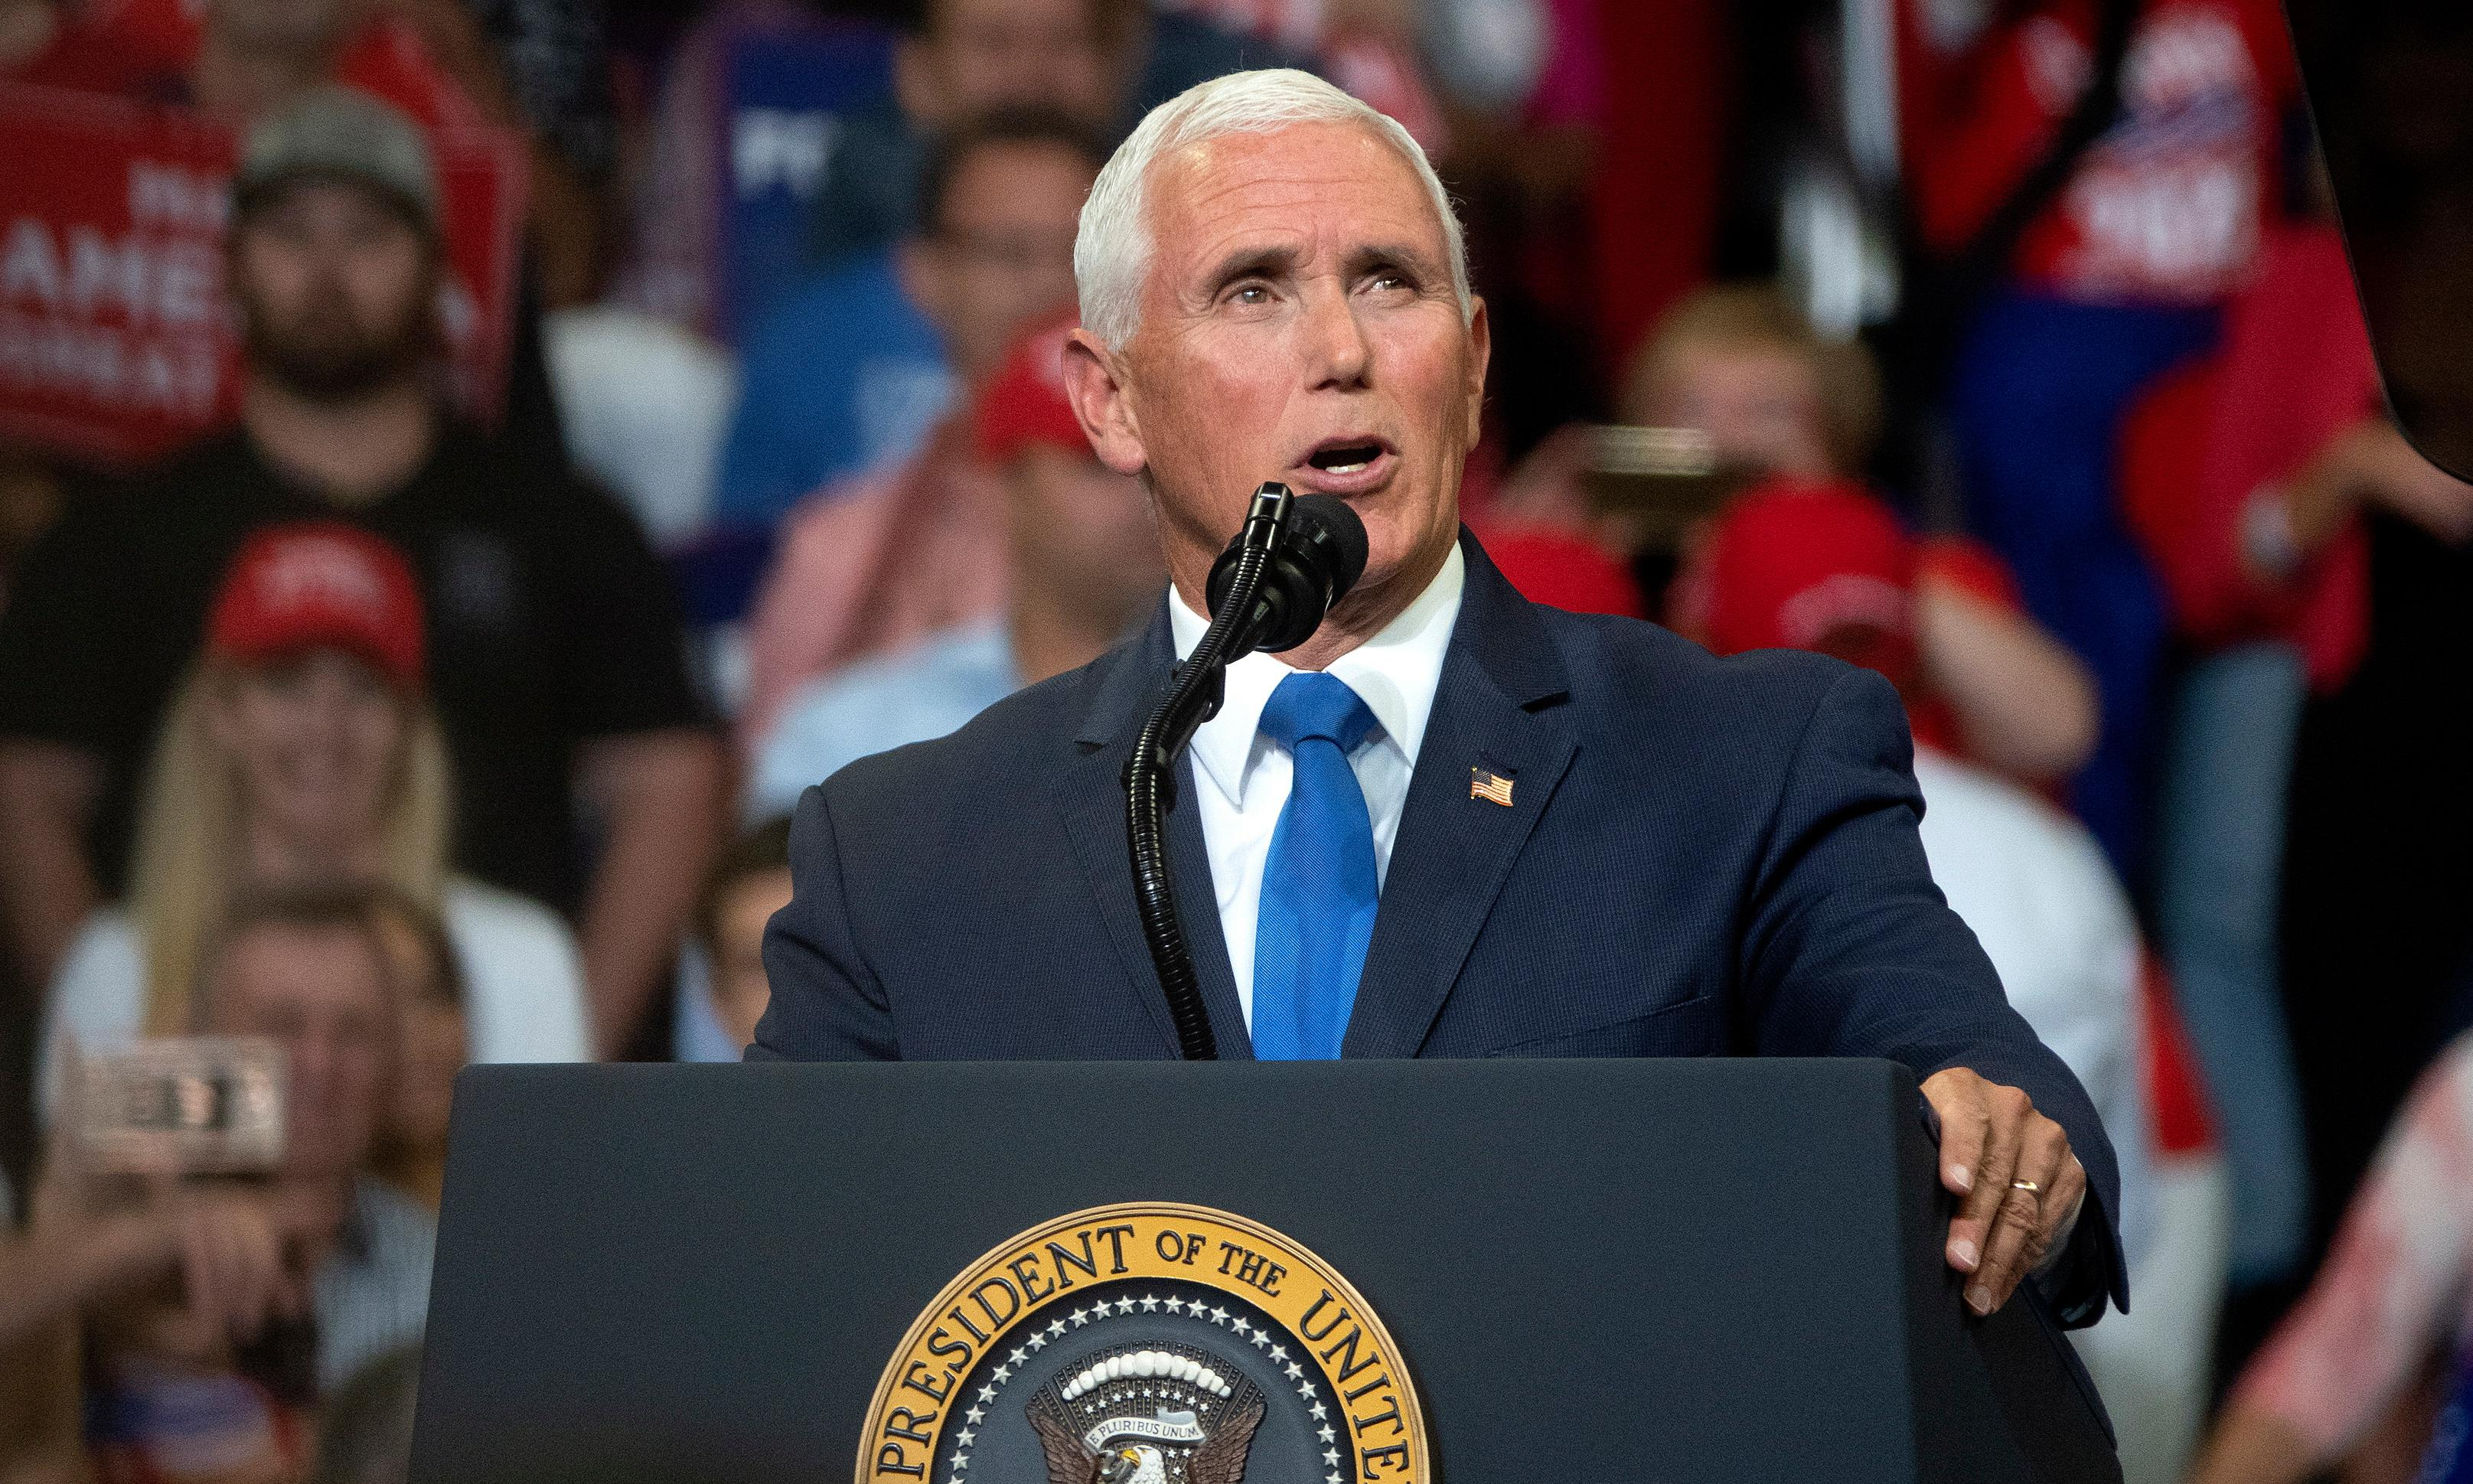 Mike Pence repeatedly refuses to say climate crisis is a threat to US